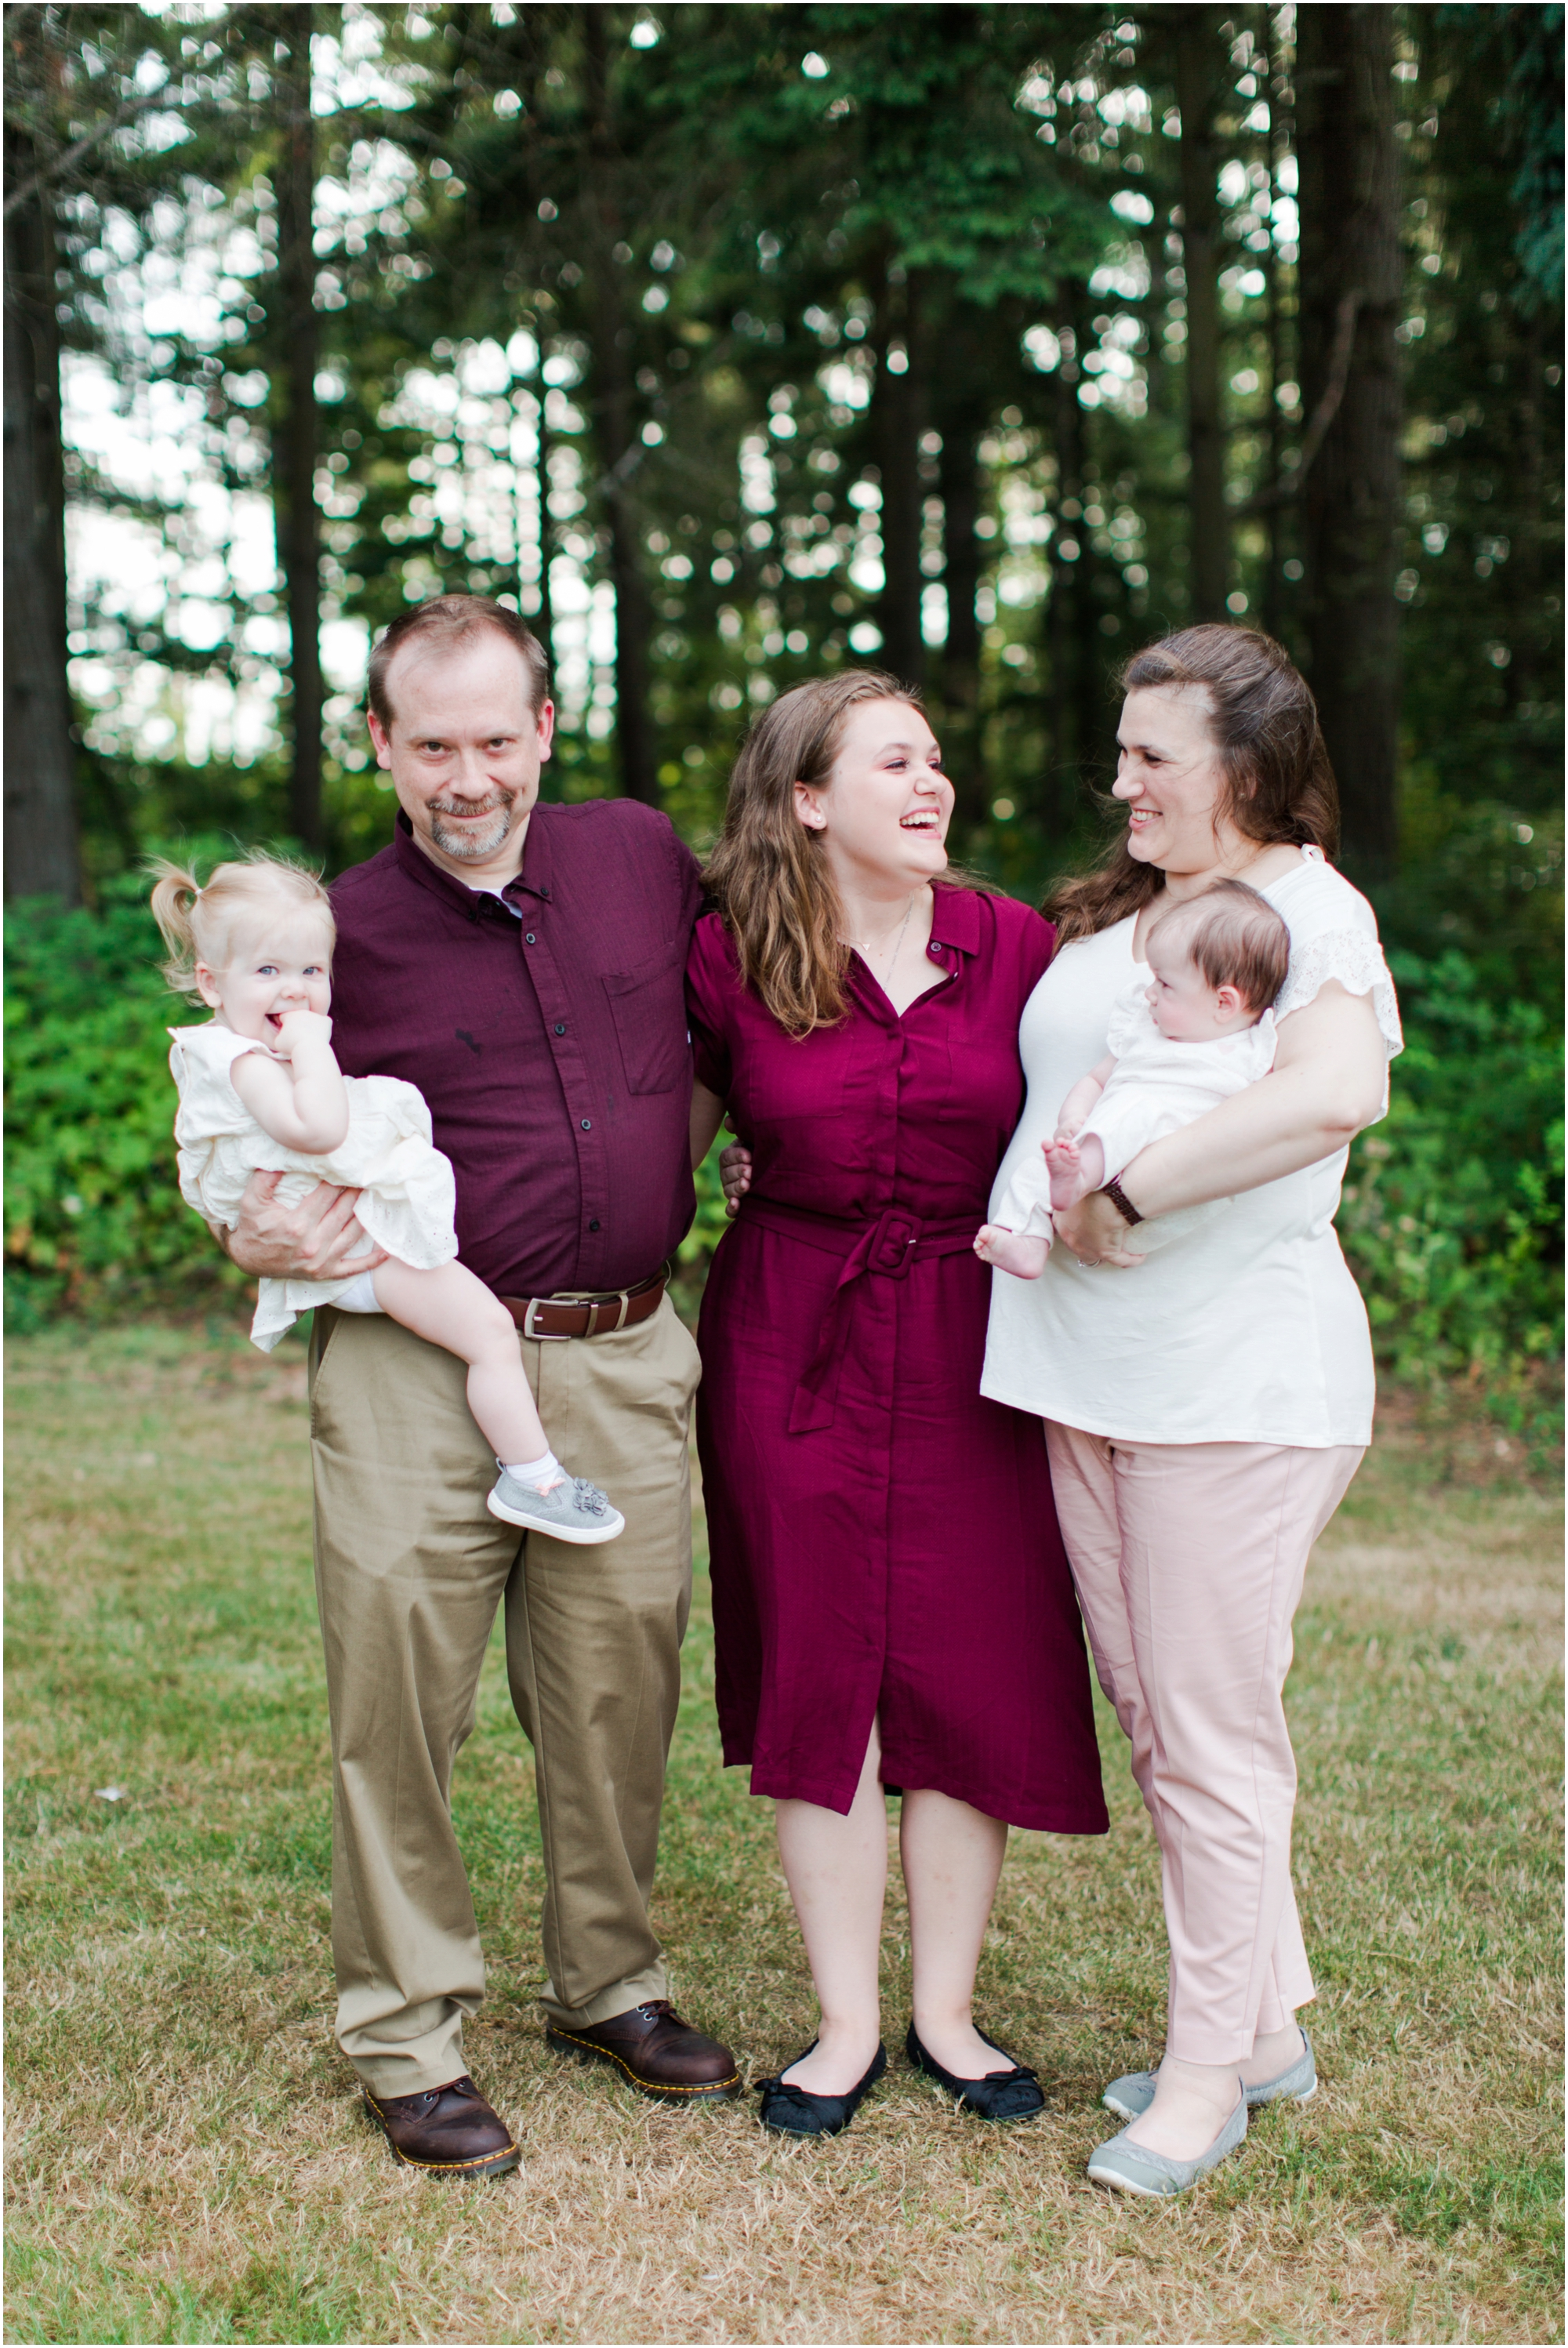 Family portraits at Bradley Lake Park in Puyallup, WA. Photos by Briana Calderon Photography based in the greater Seattle-Tacoma Area._1372.jpg